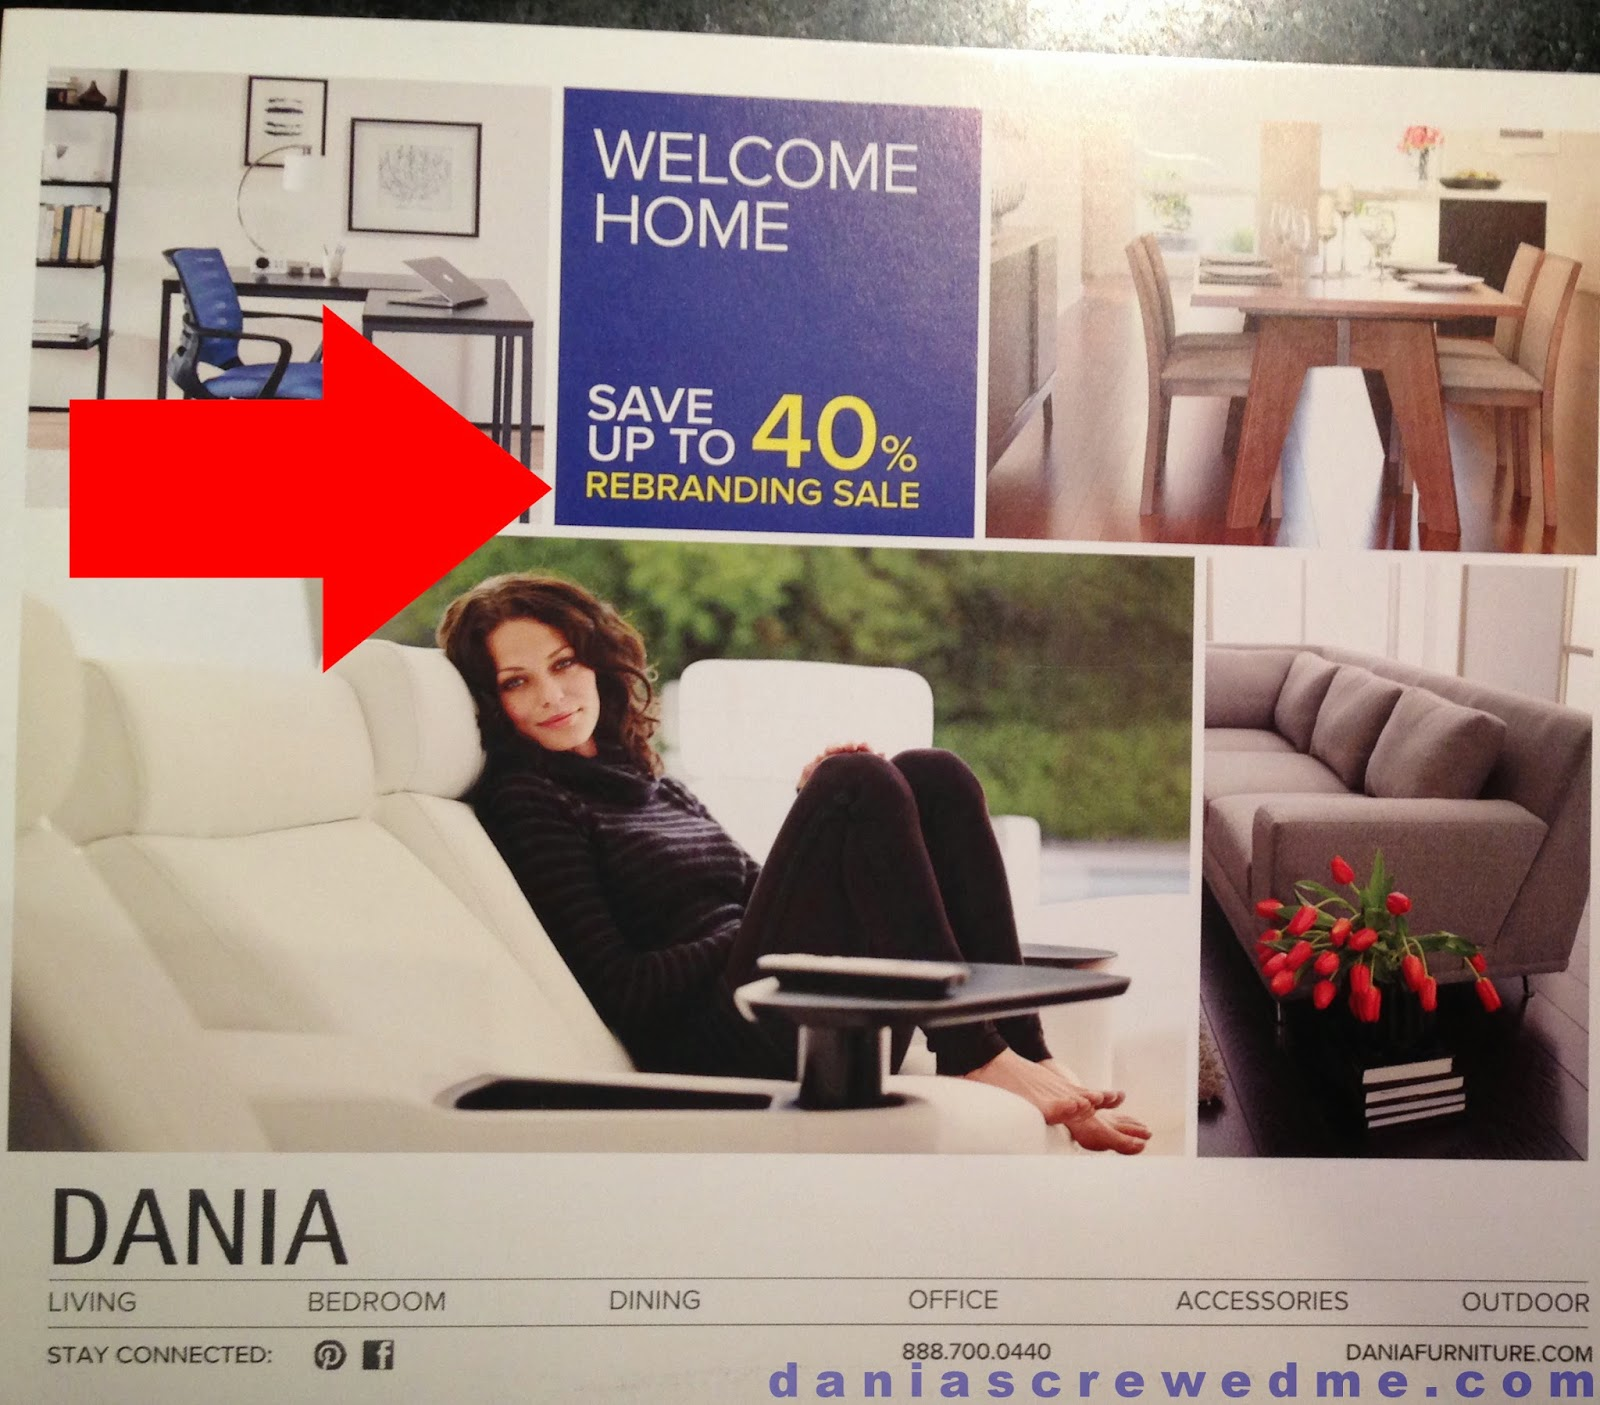 Superb Dania Furniture Plans To Telegraph Its Rebranding Sale, In Addition To  Direct Mail